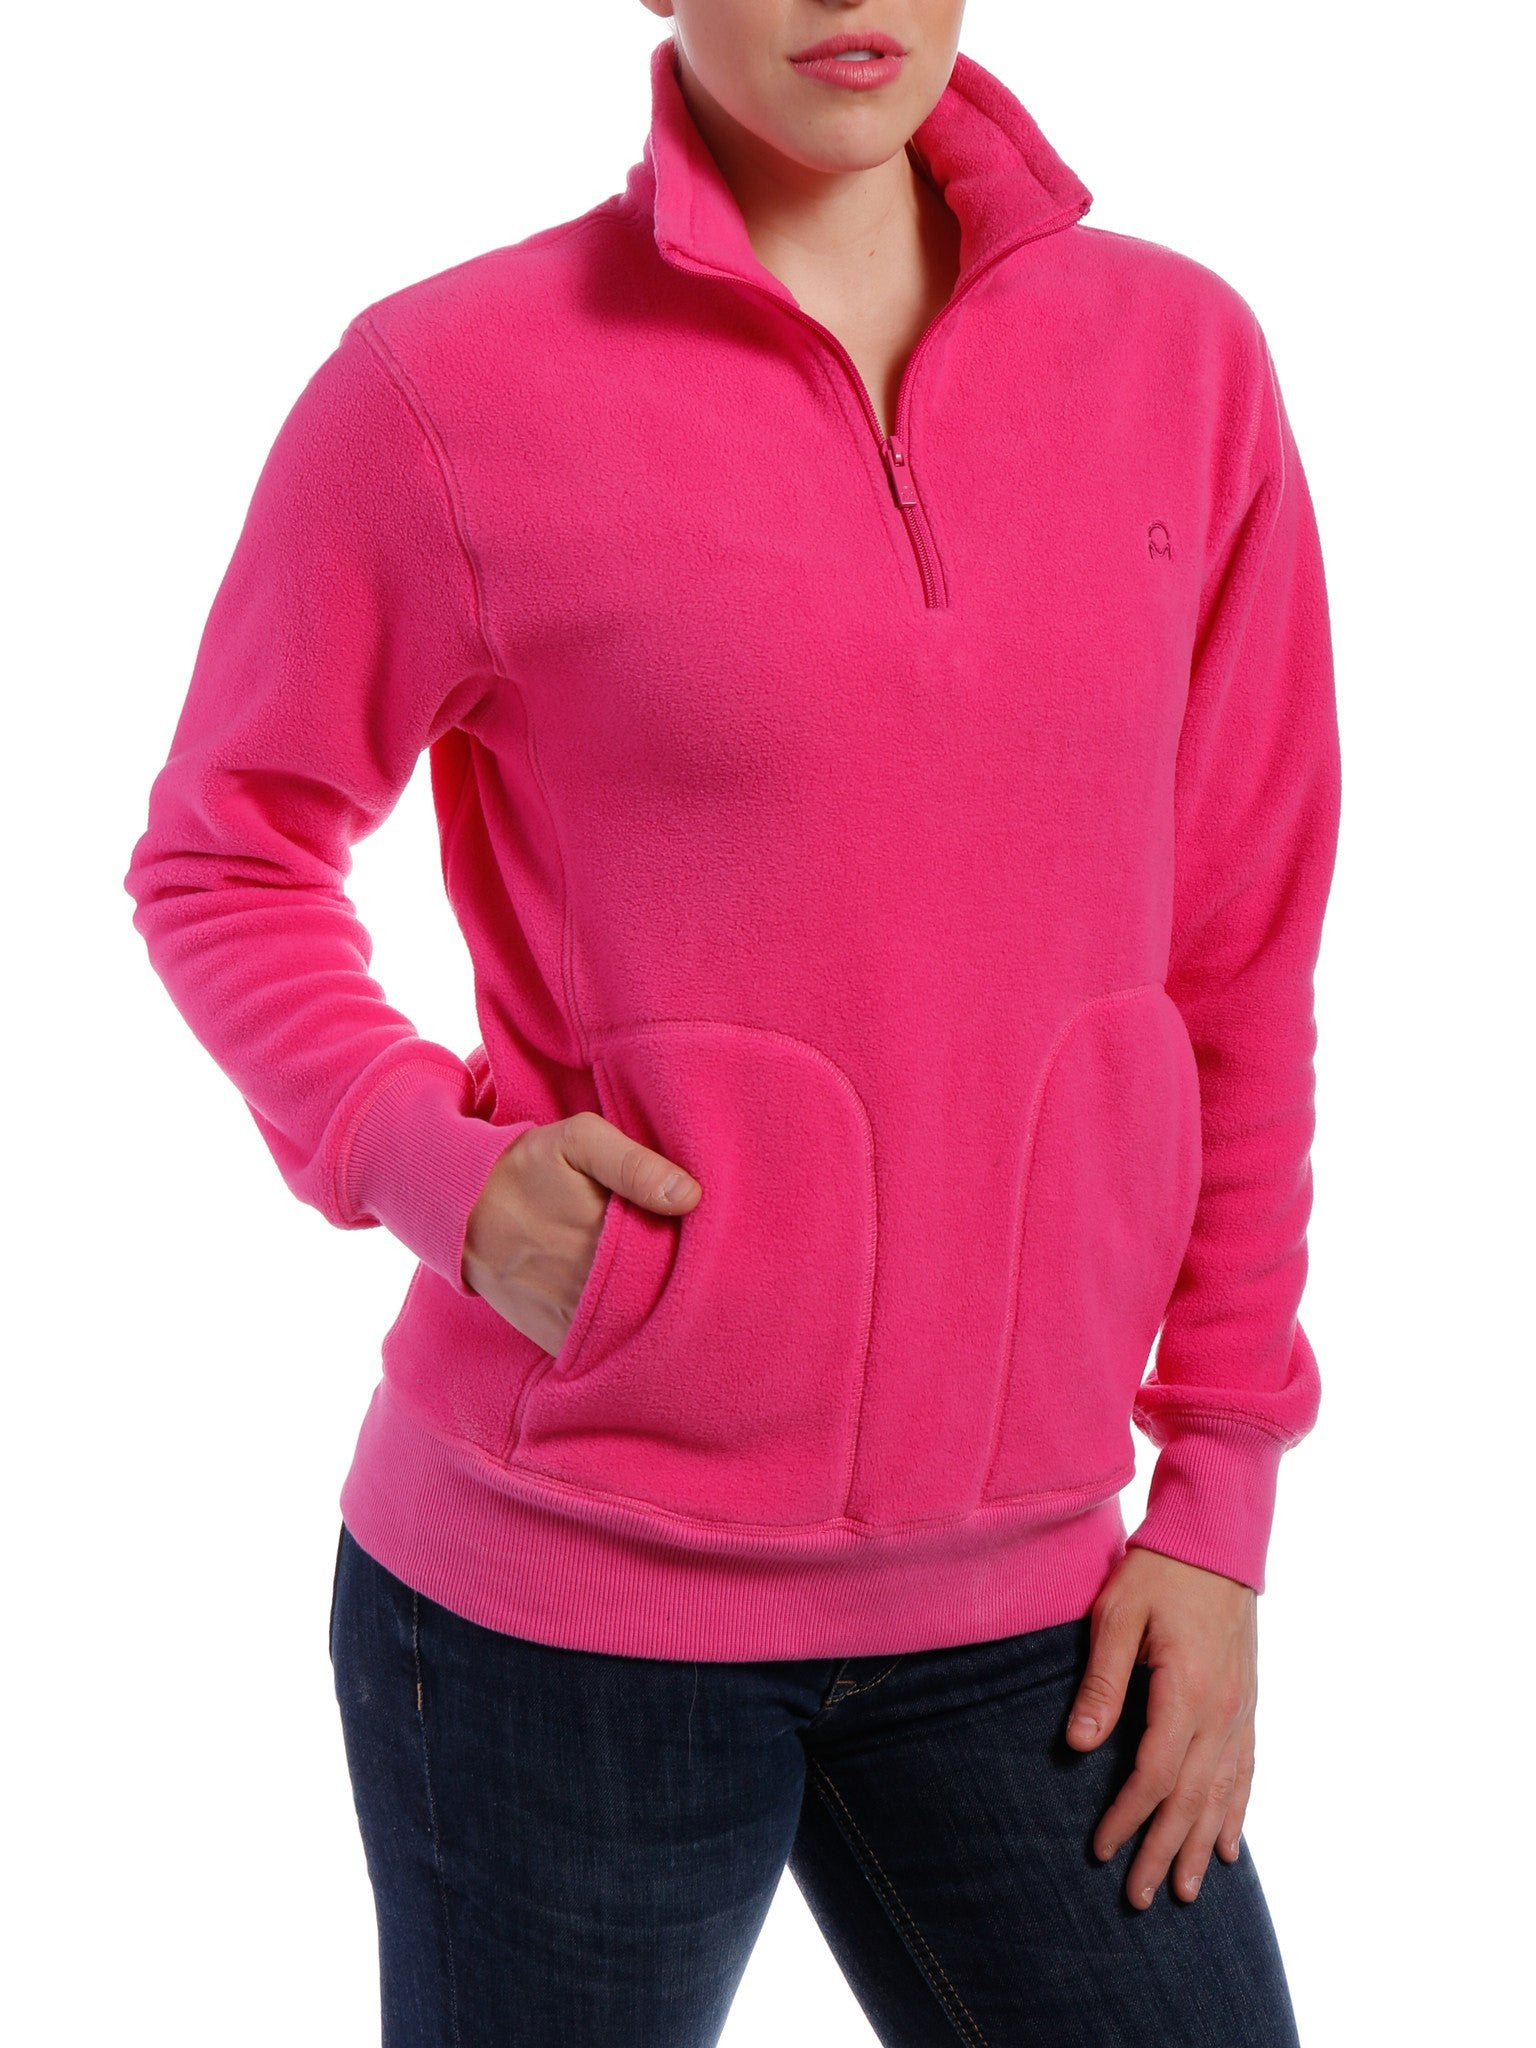 Women's Soft Fleece Half-Zip Pullover